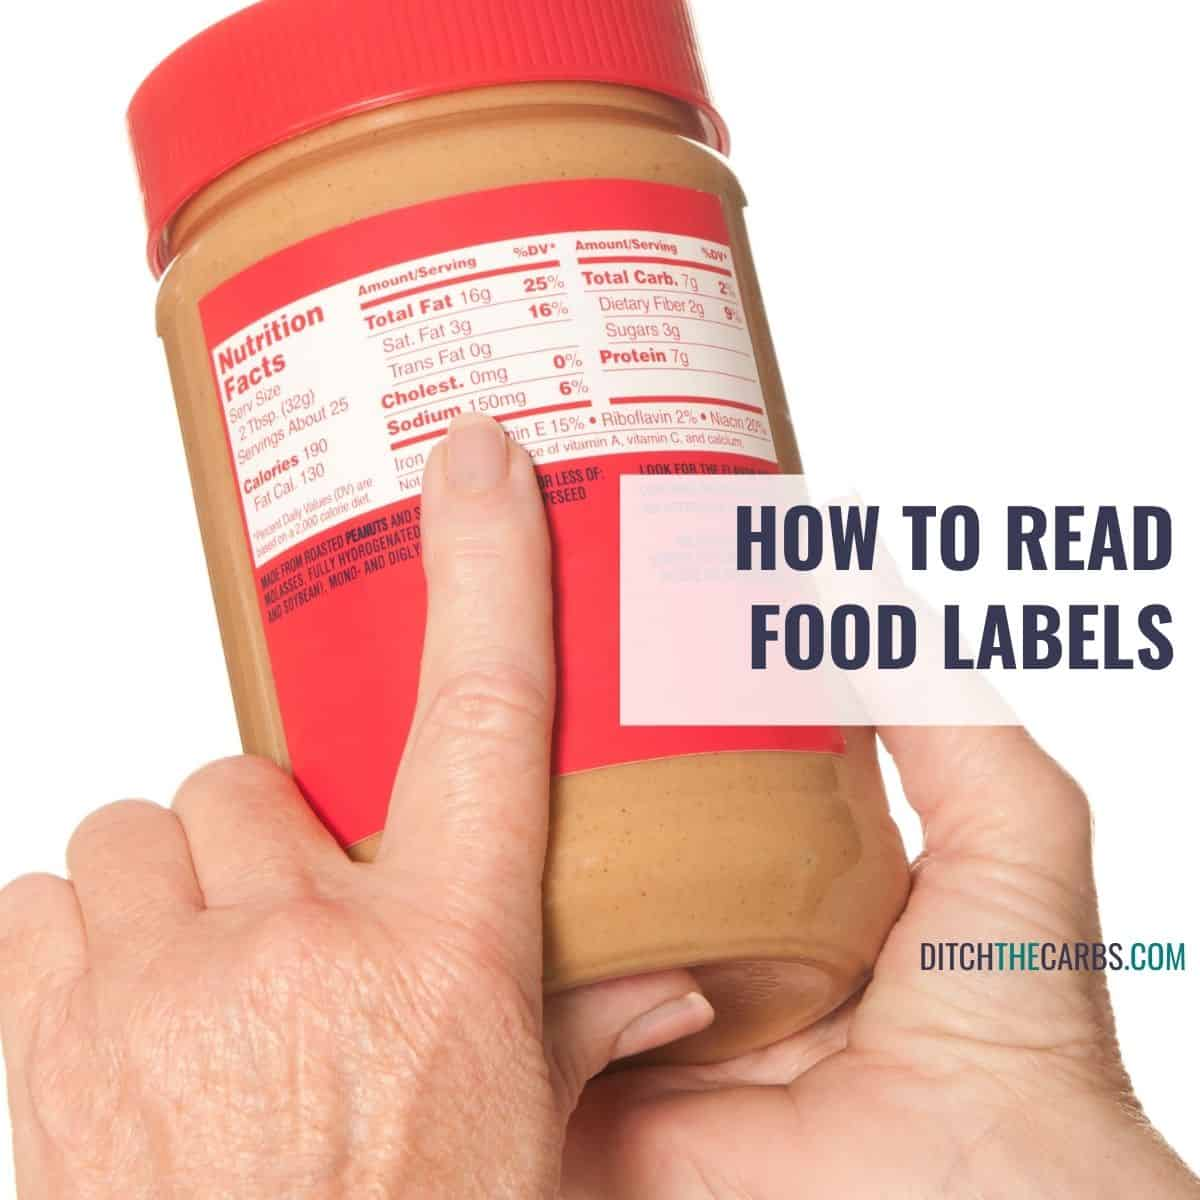 How To Read Nutrition Labels Like a Pro